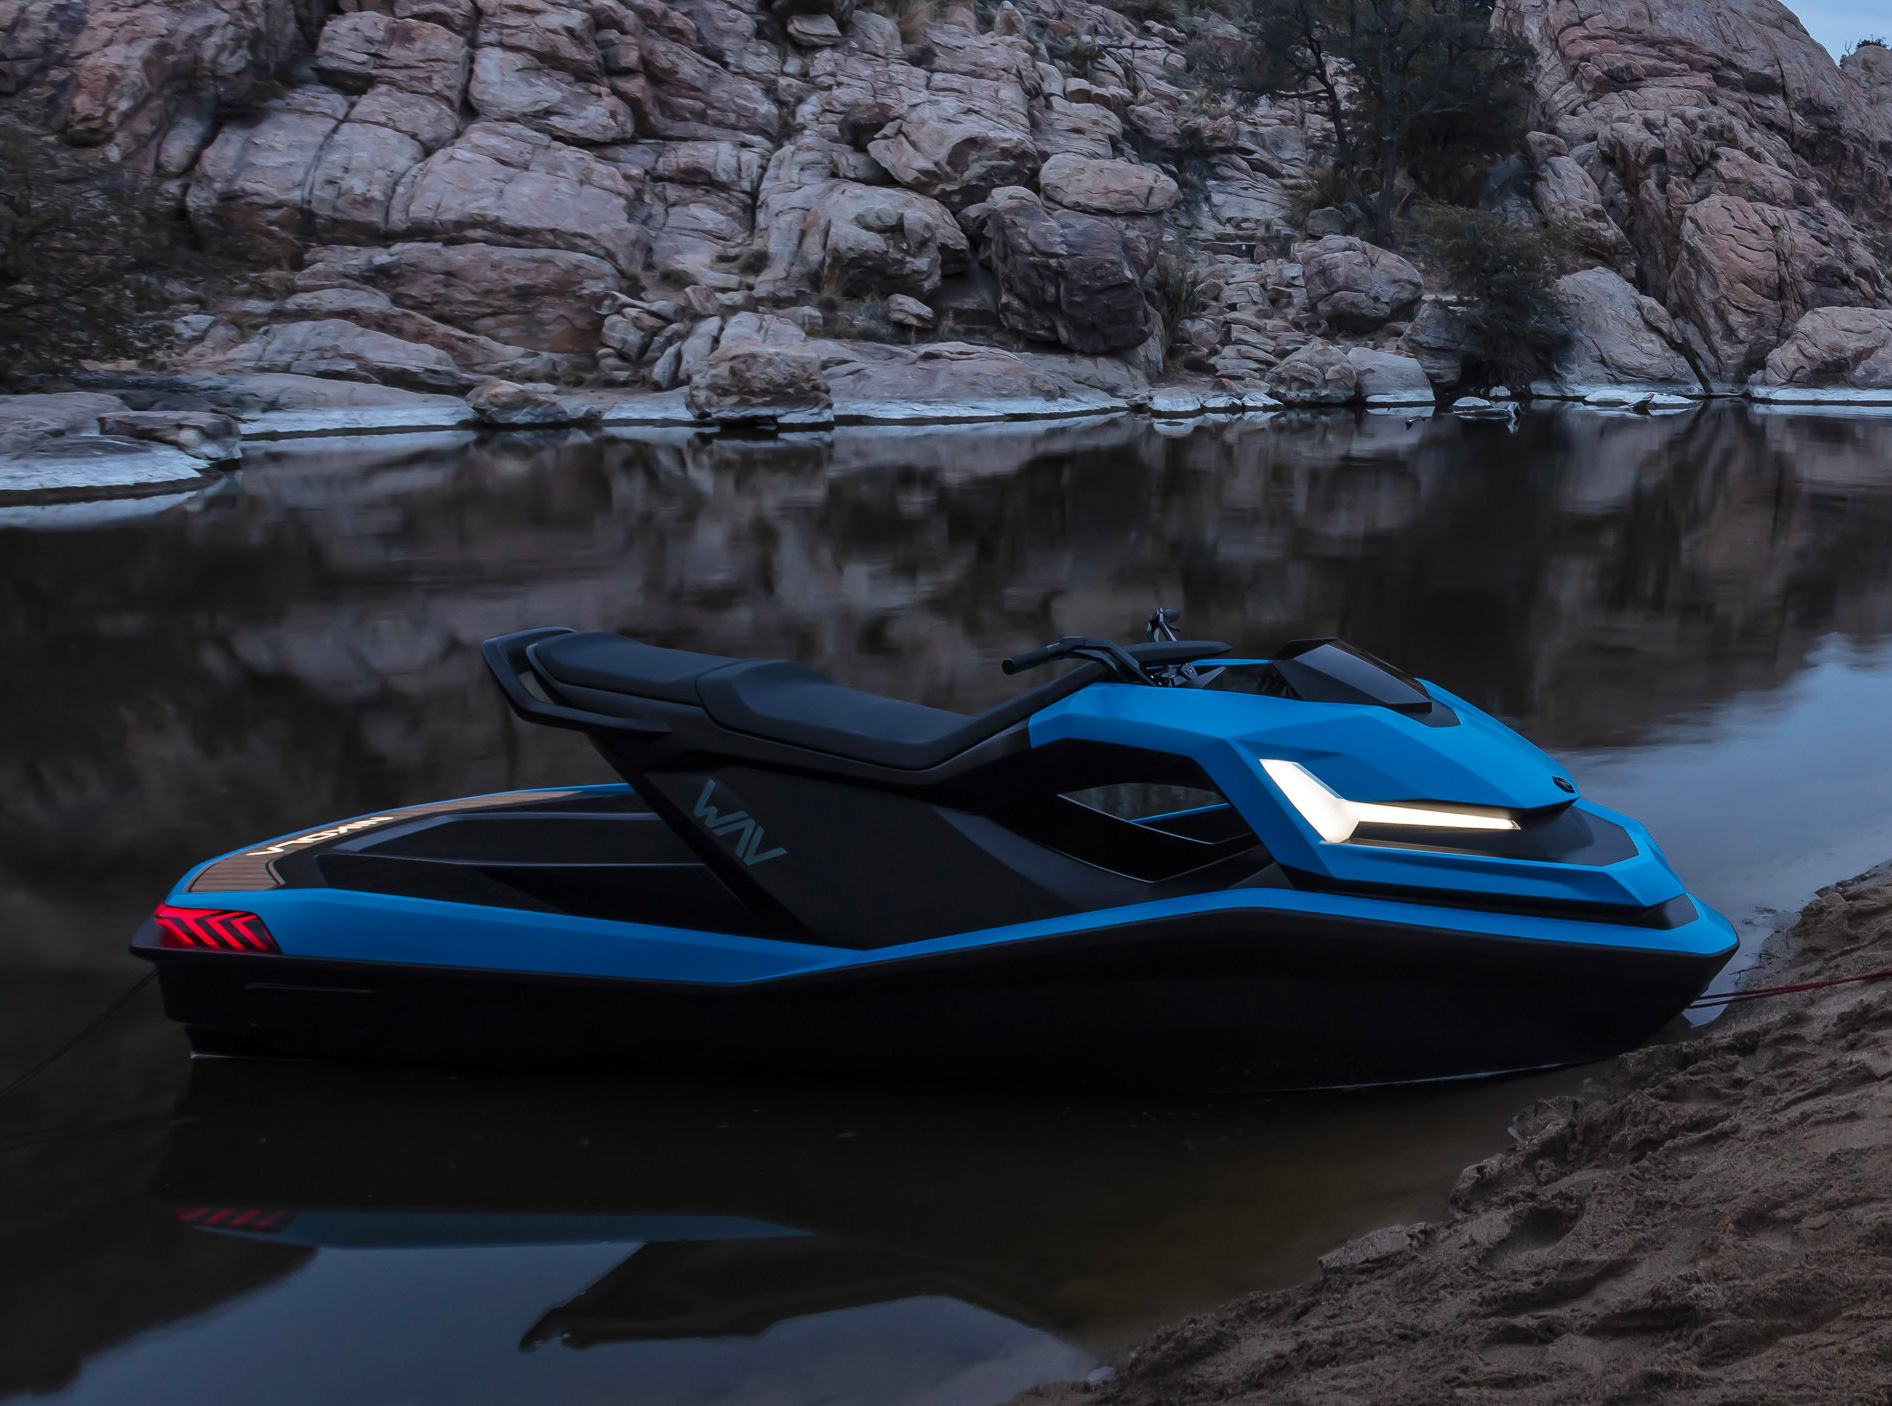 Nikola Motors Drops an All-Electric PWC in the Water at werd.com